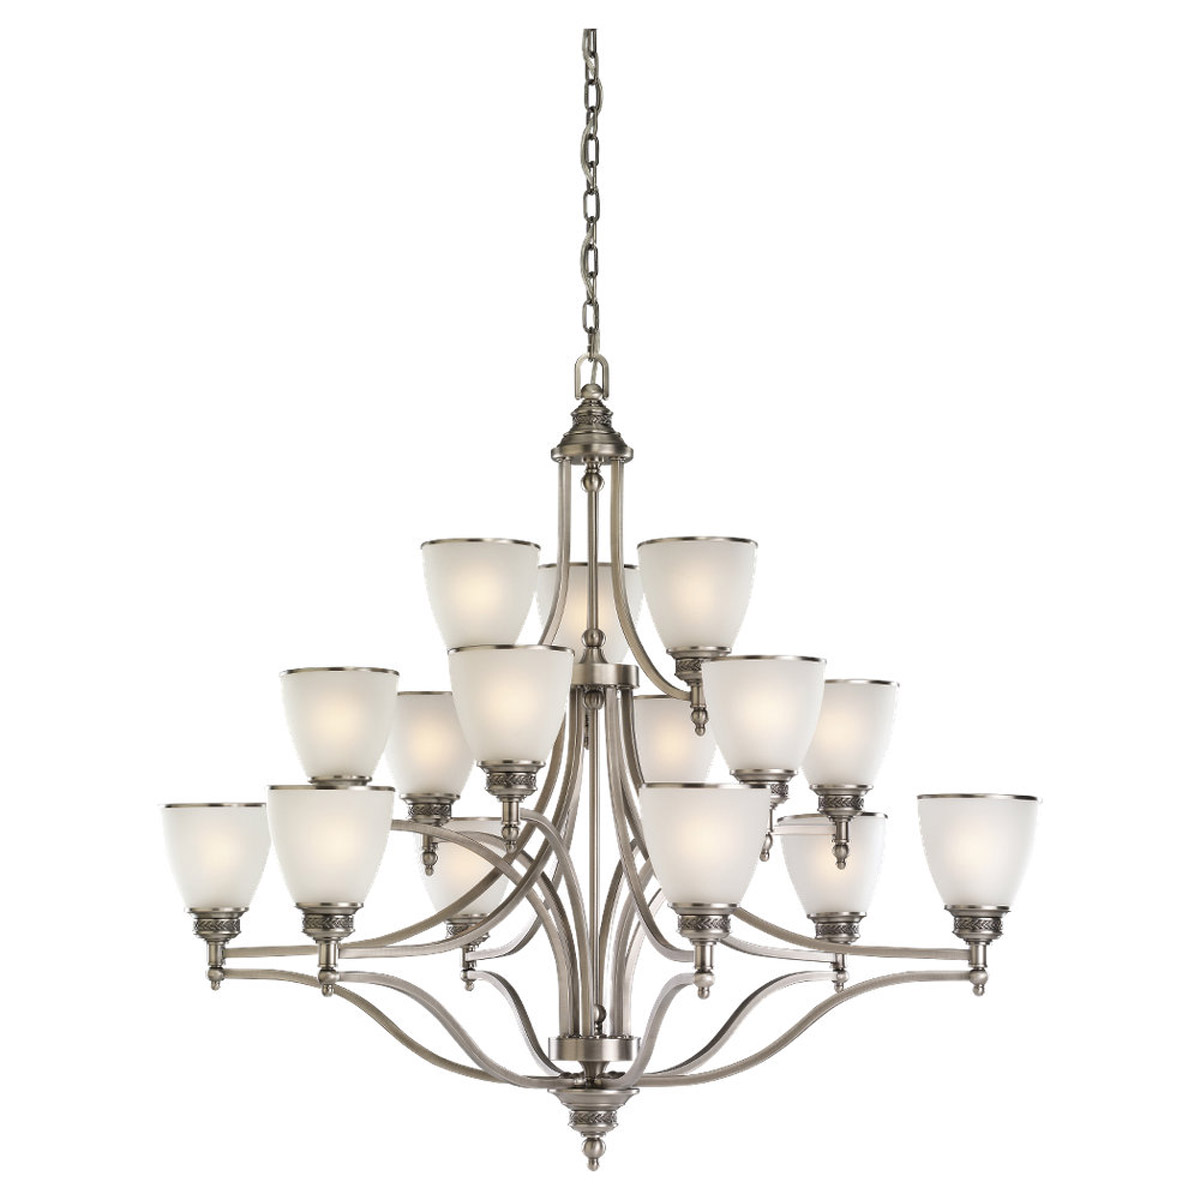 Sea Gull Lighting Laurel Leaf 15 Light Chandelier in Antique Brushed Nickel 31352-965 photo